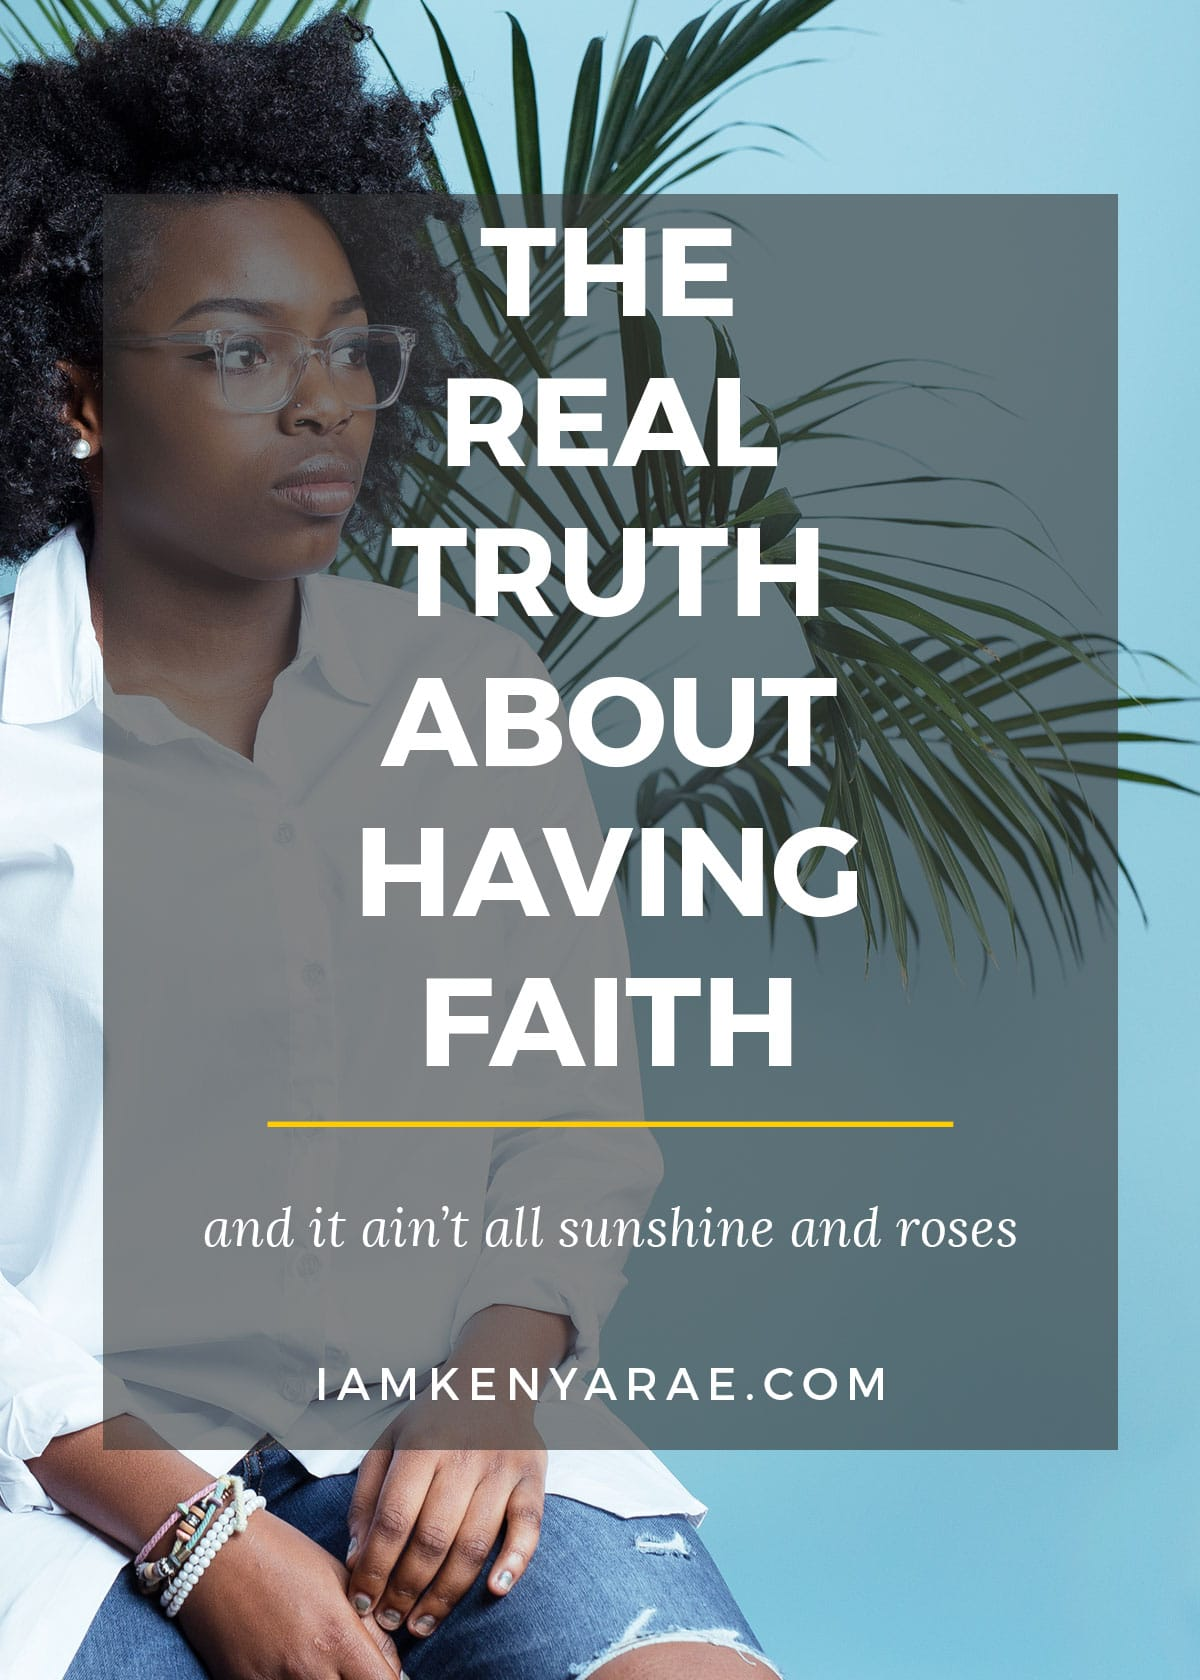 the real truth about having faith